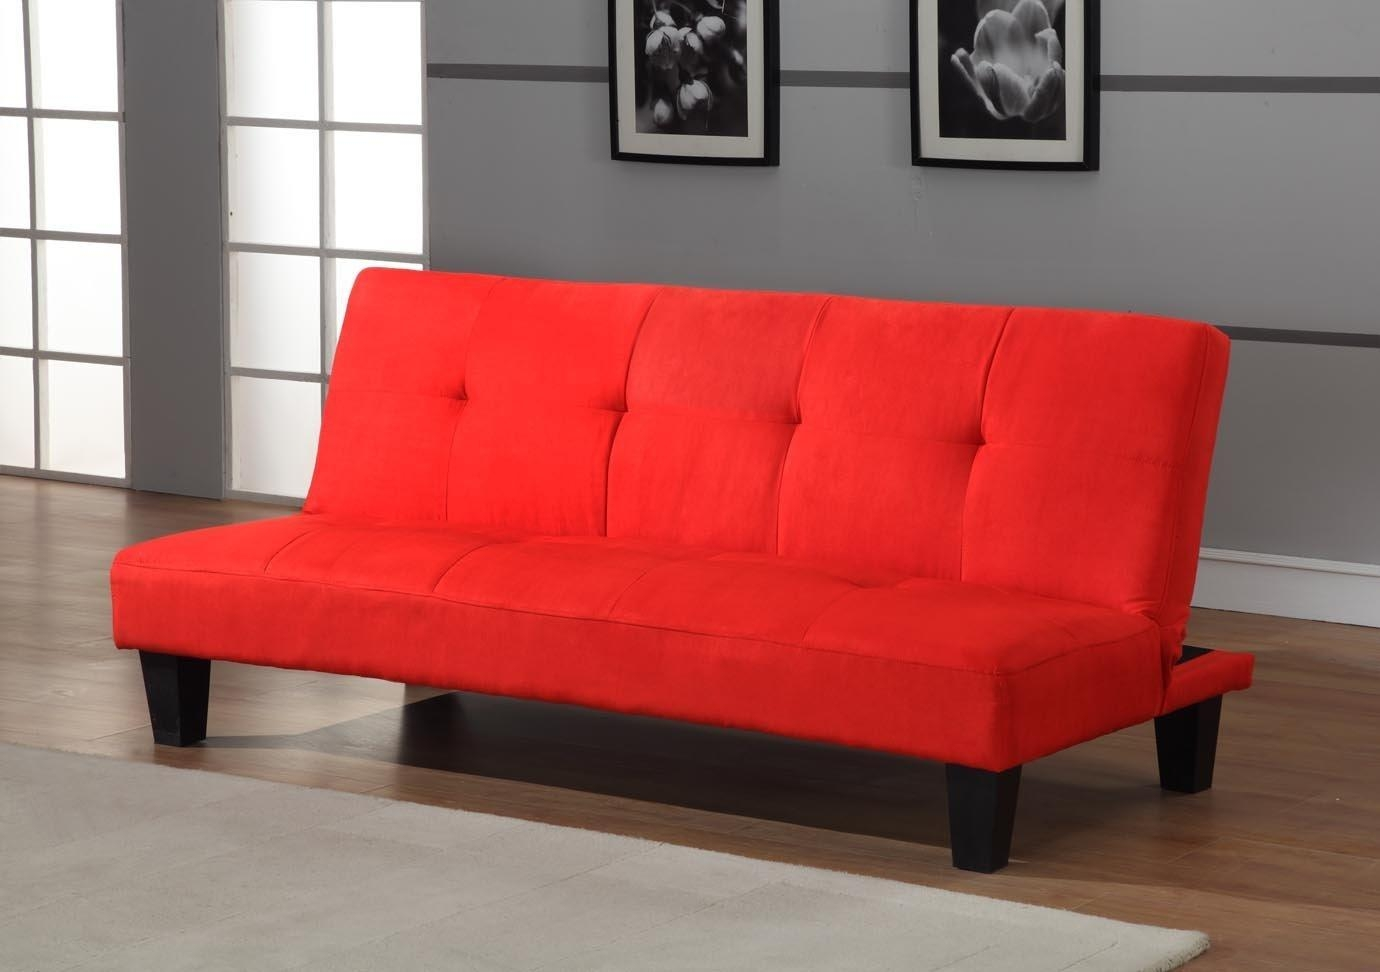 Furniture: Fancy Kebo Futon Sofa Bed For Living Room Furniture Intended For Small Black Futon Sofa Beds (View 13 of 20)